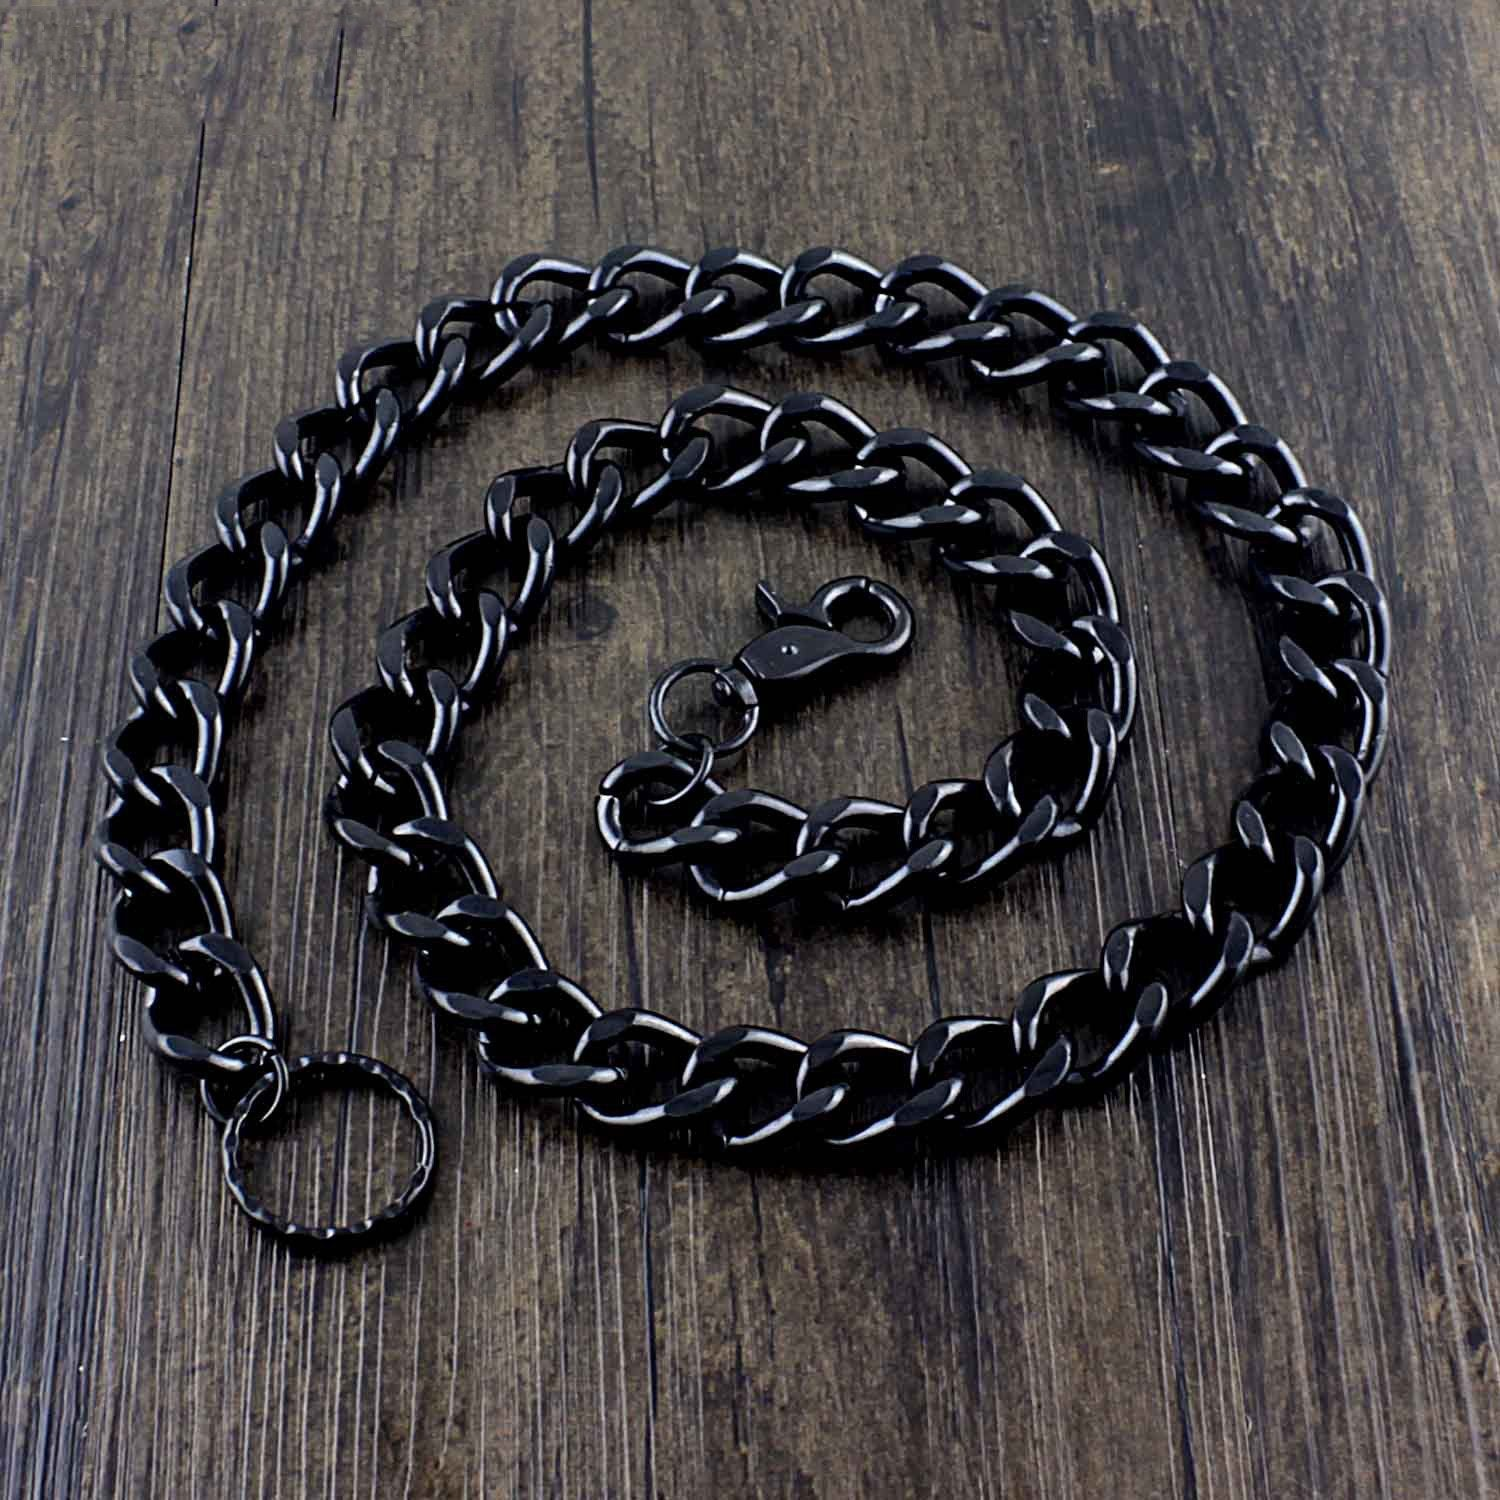 Cool Black Punk Pants Chain Biker Wallet Chain Black Jean Chain Long Wallet Chain For Men